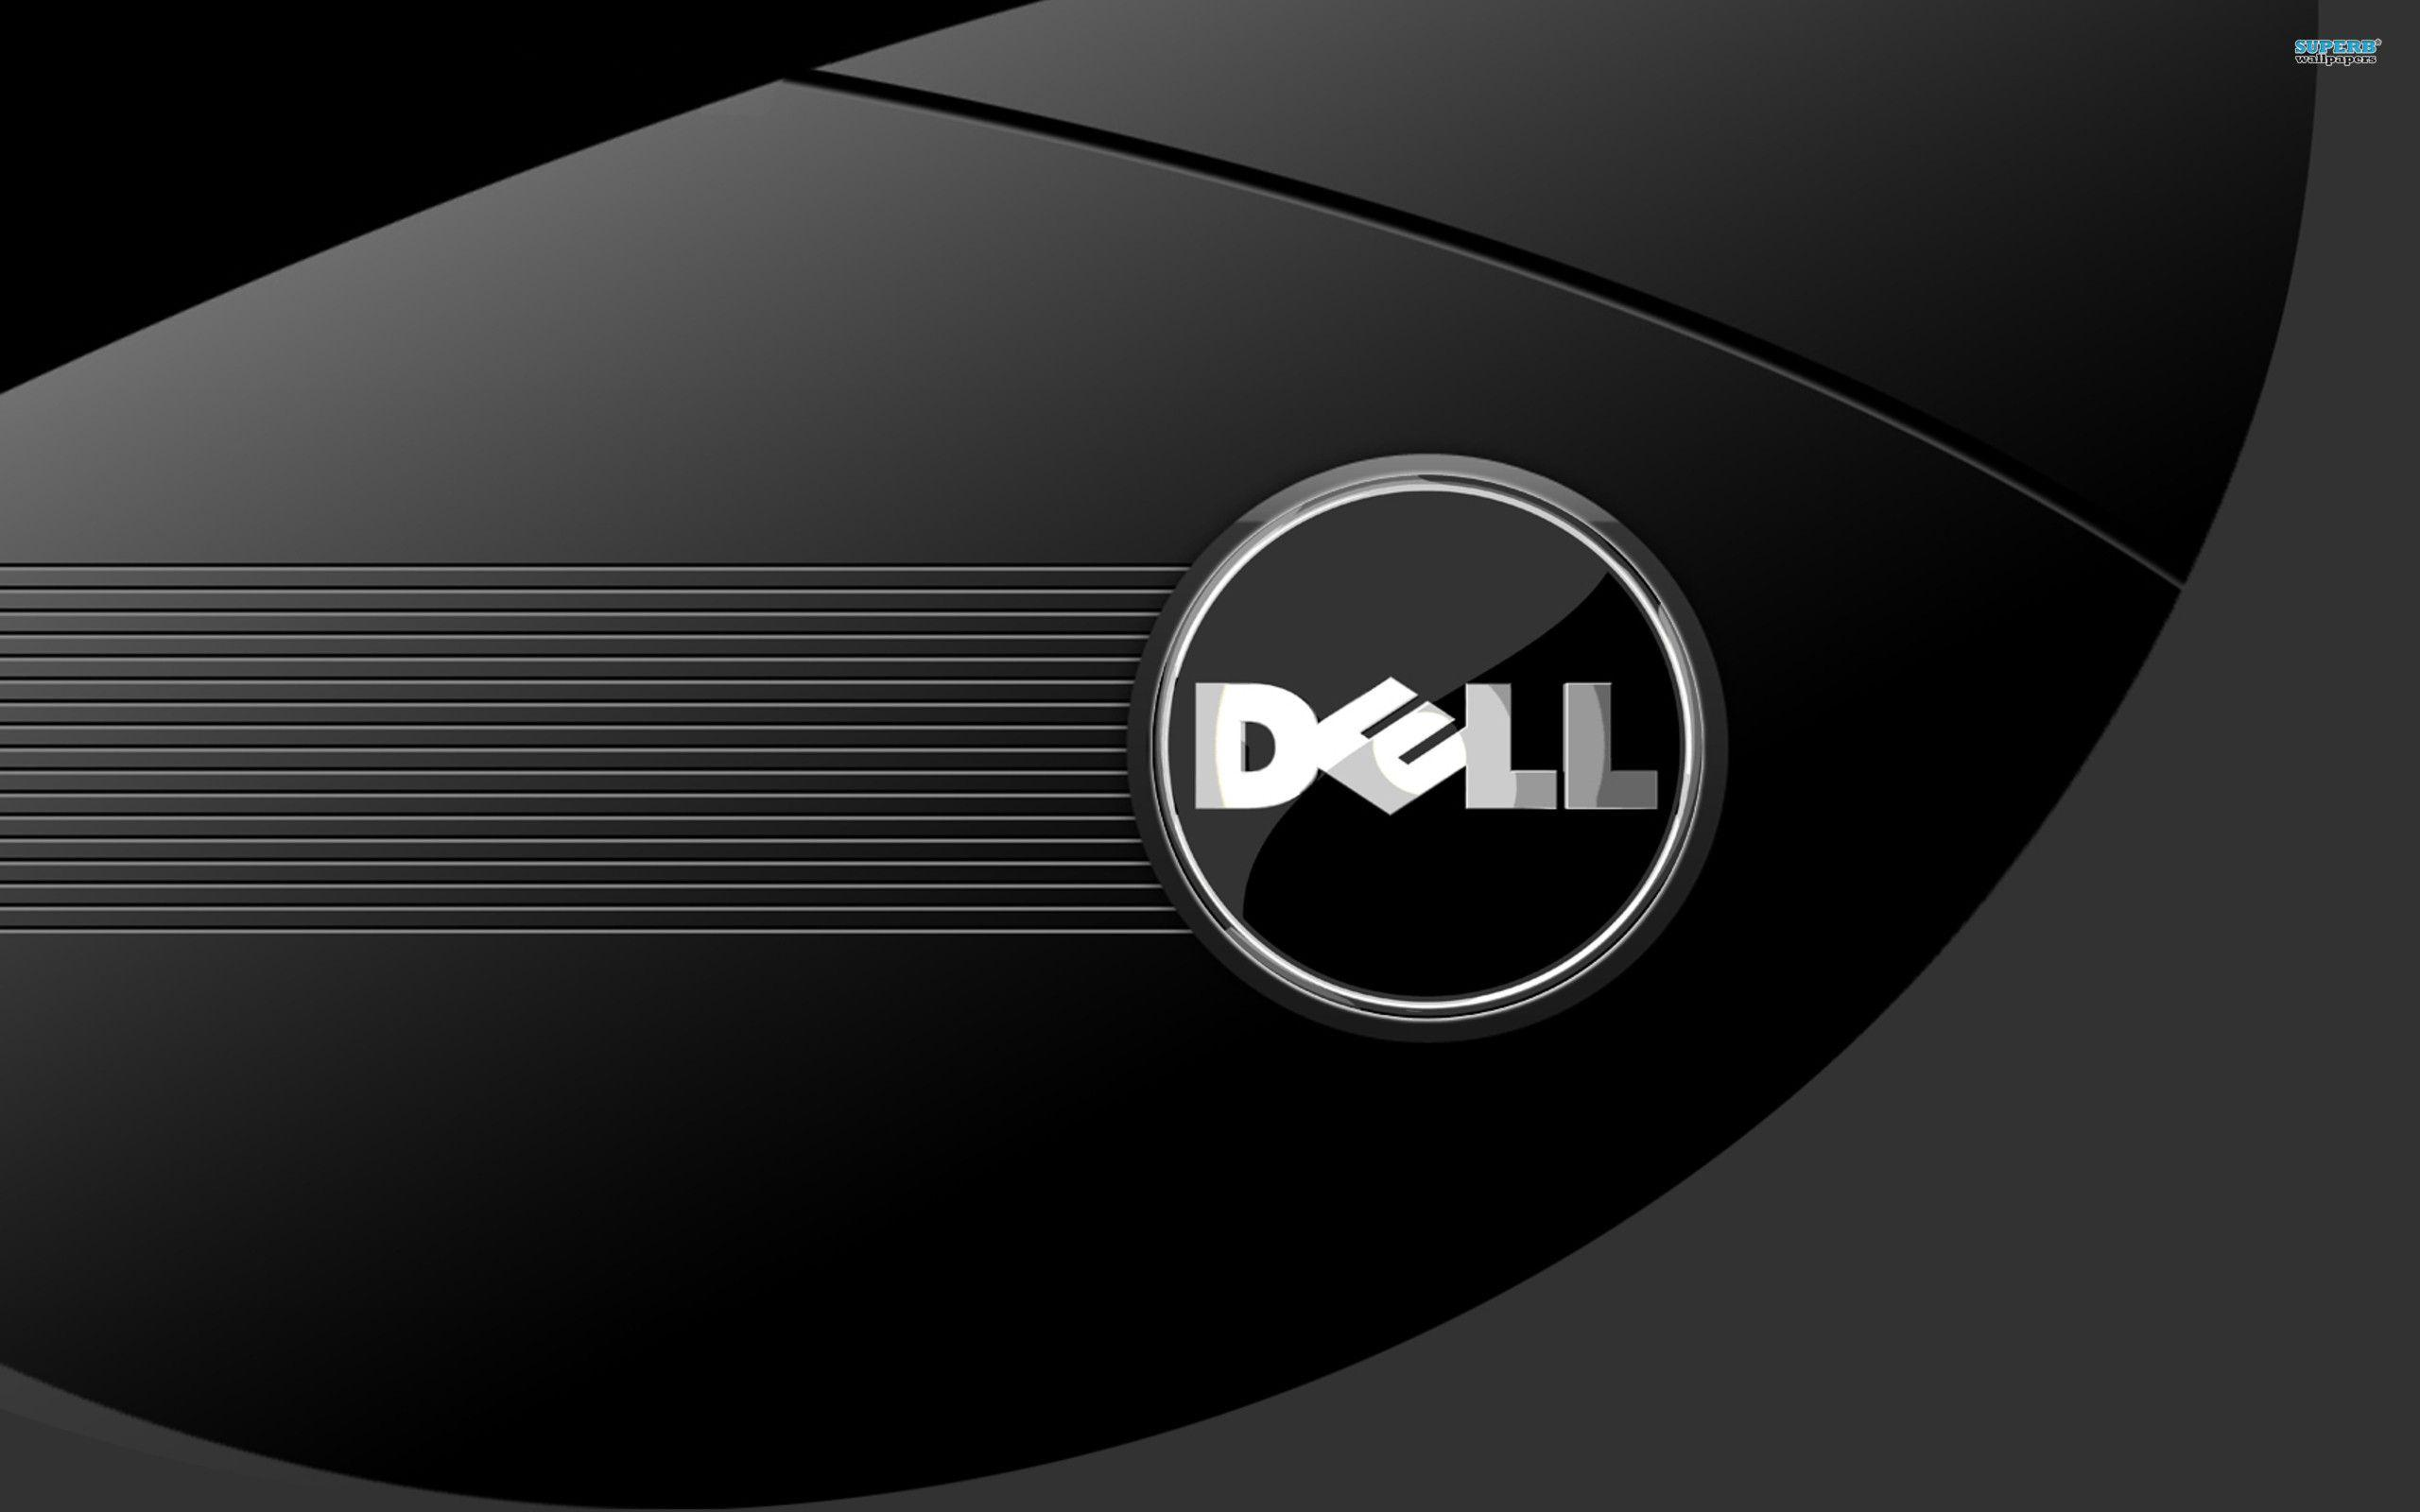 Dell HD Wallpapers   Top Dell HD Backgrounds   WallpaperAccess 2560x1600